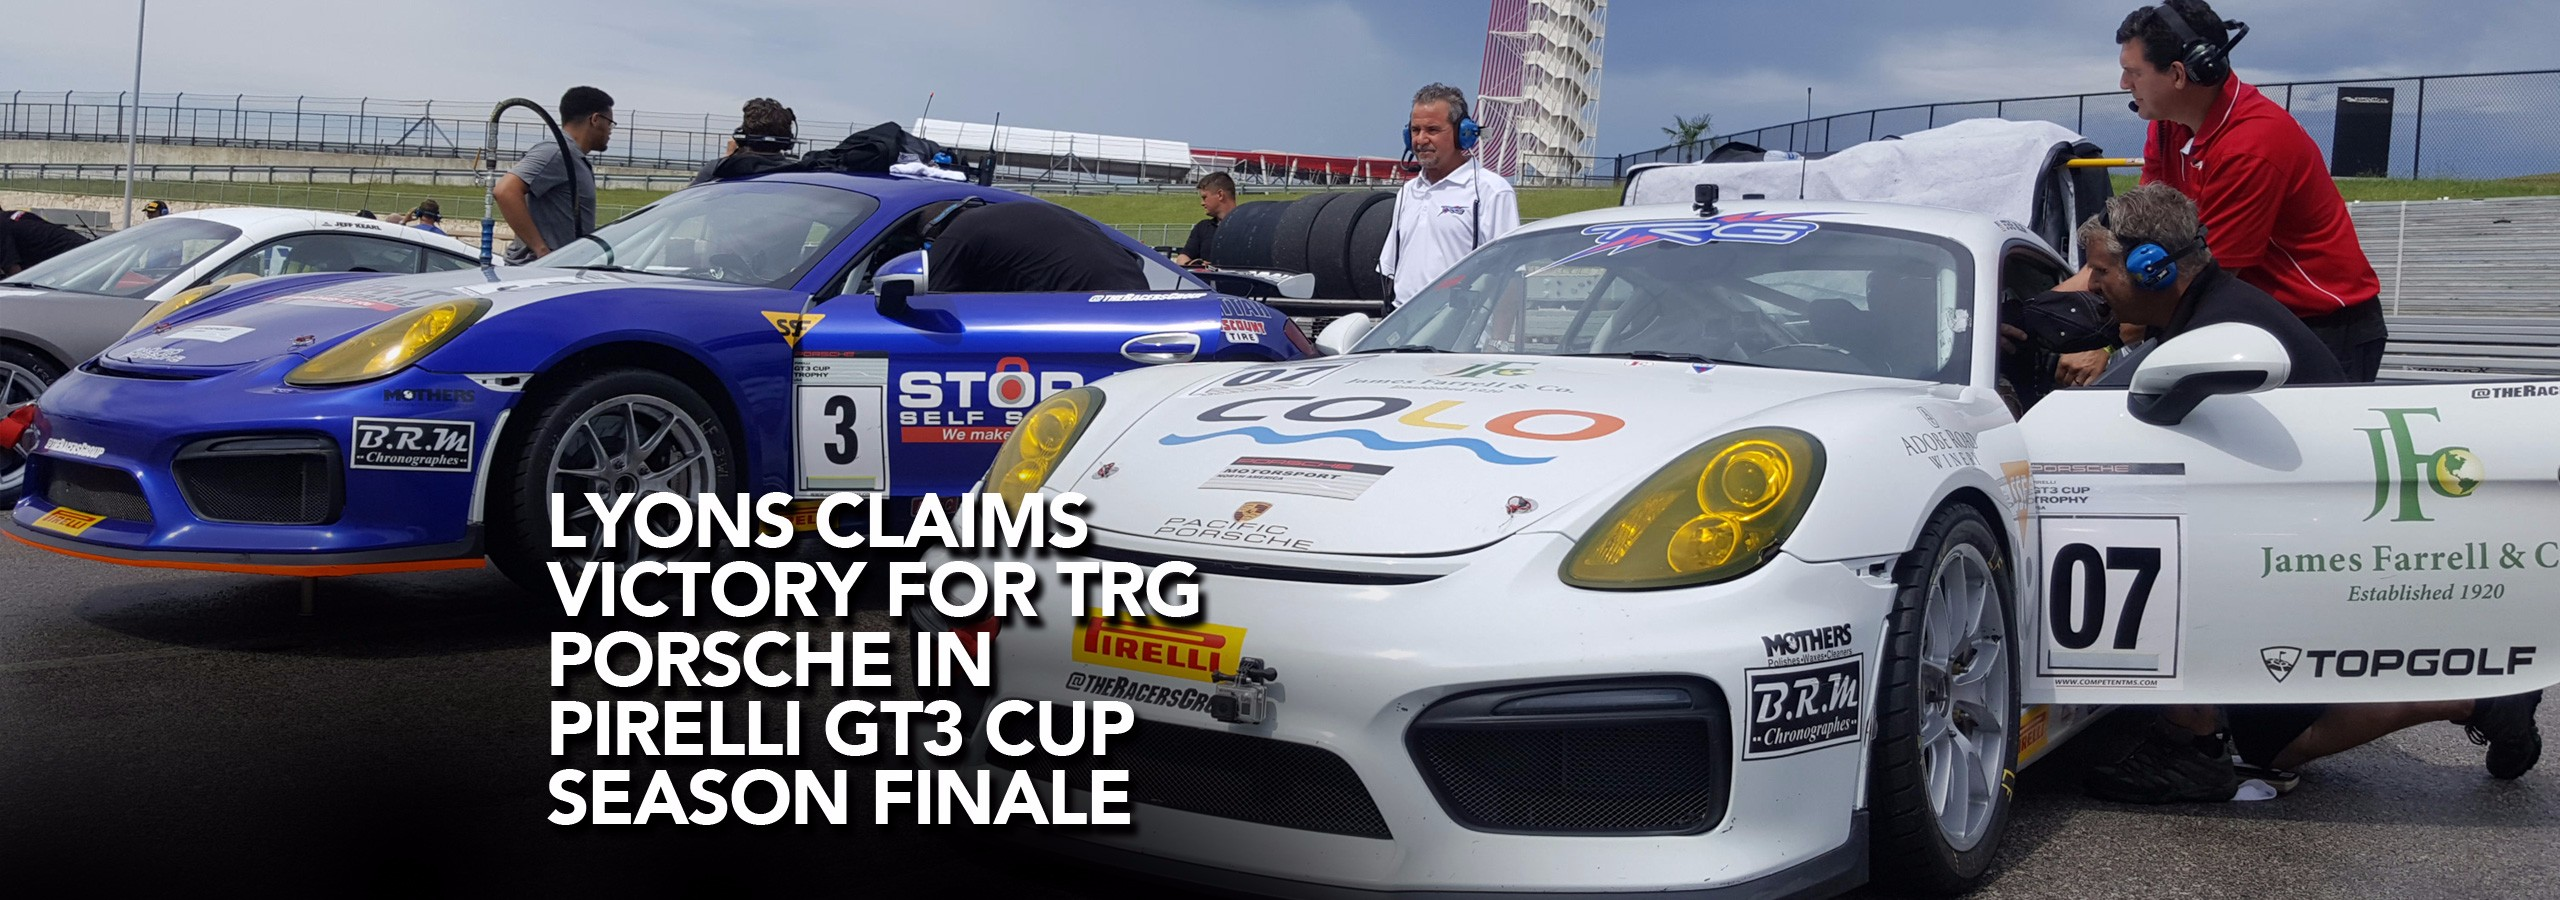 Lyons Claims Victory For TRG Porsche in Pirelli GT3 Cup Season Finale